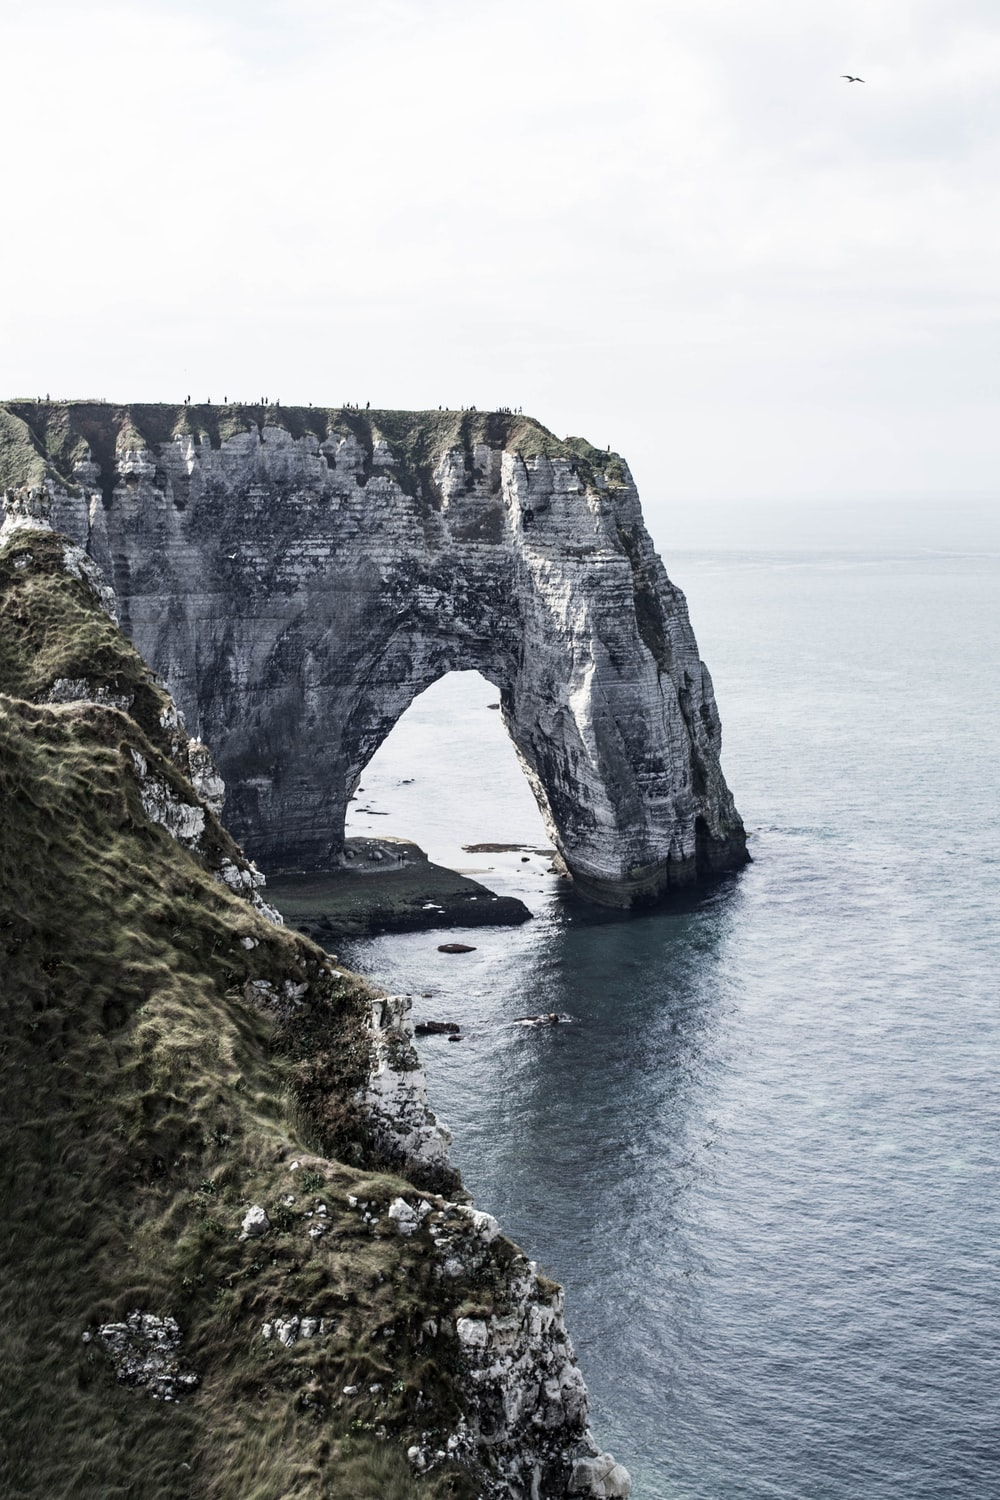 gray and green rock formation on sea during daytime